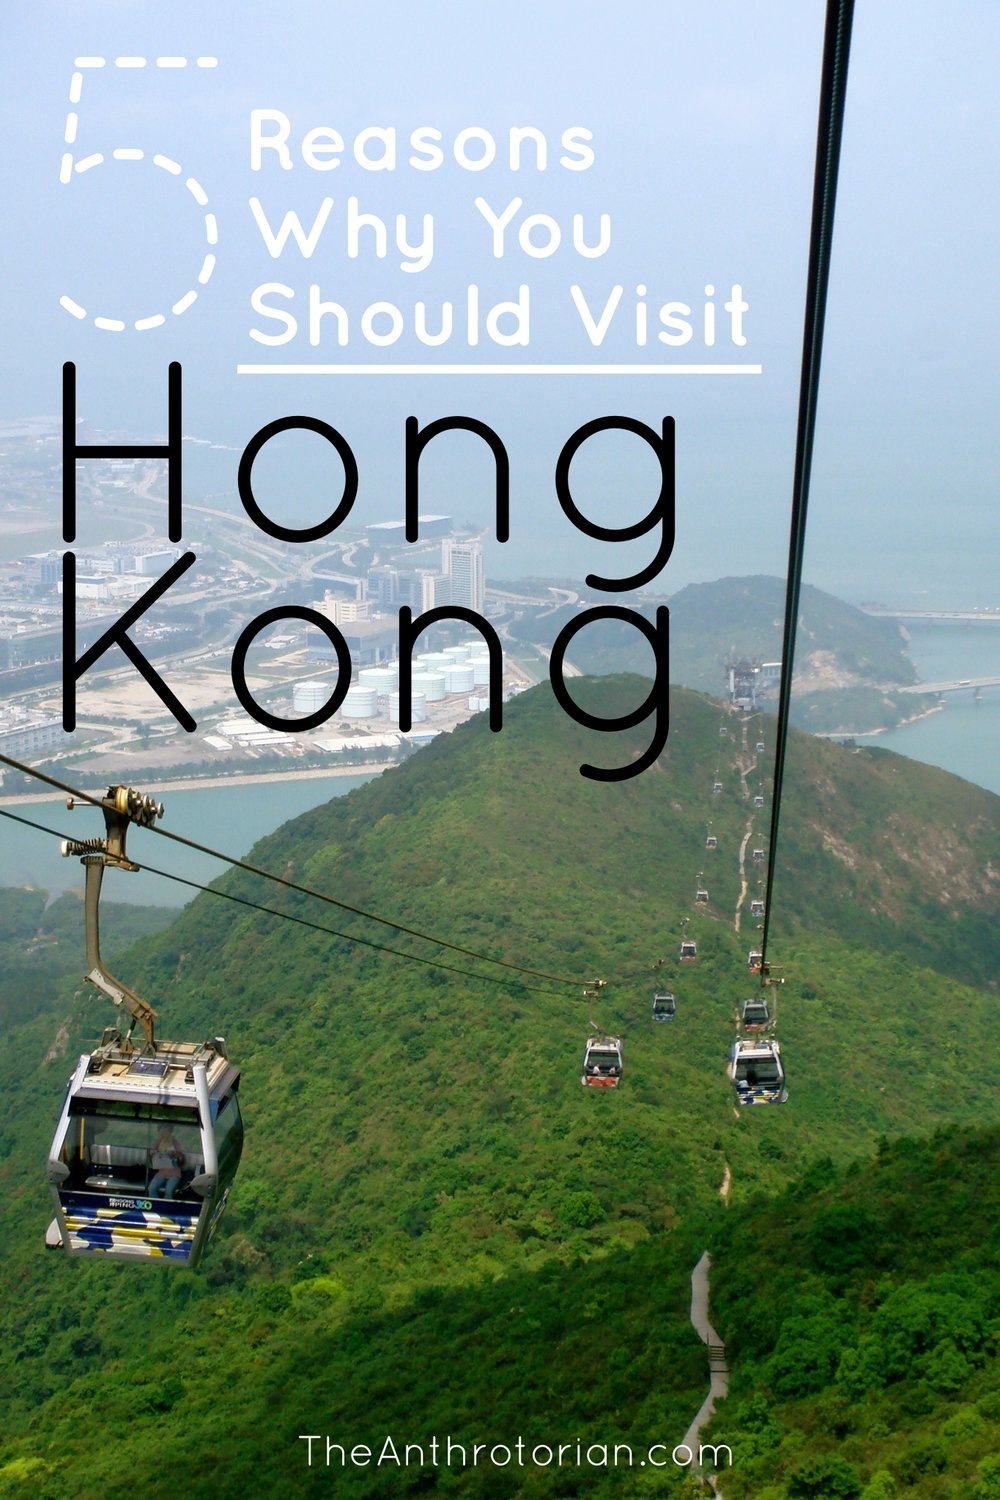 5 Reasons to Visit Hong Kong